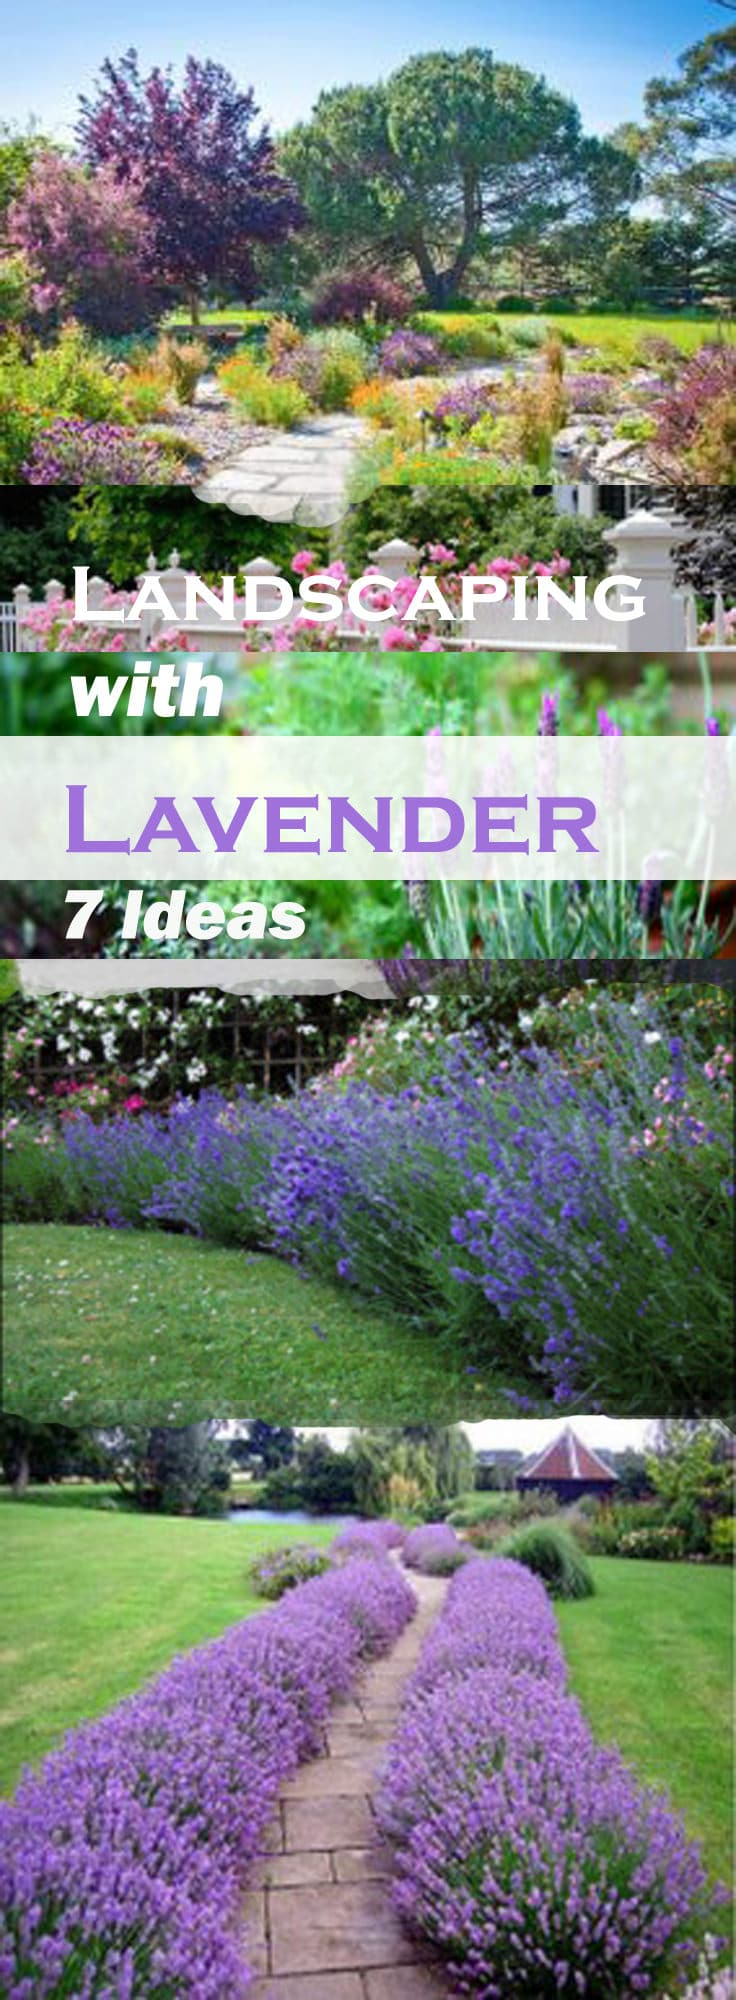 Landscaping with lavender 7 garden design ideas for Garden landscaping ideas